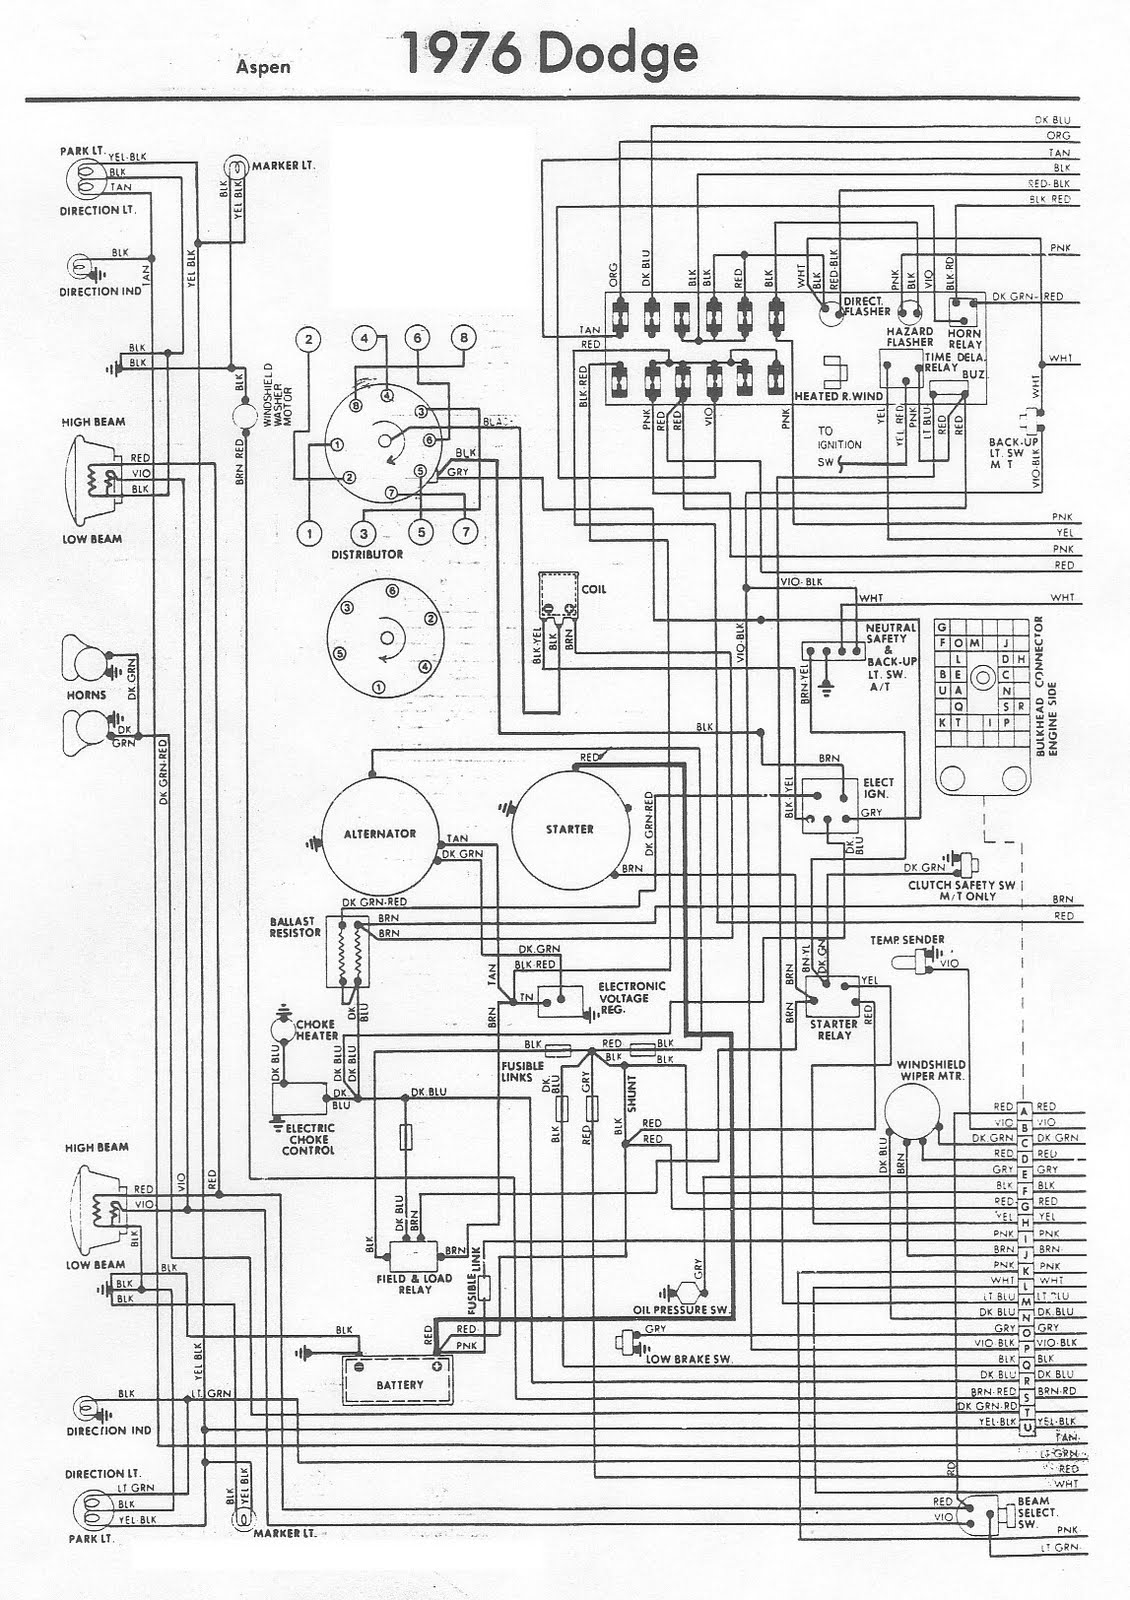 76_Dodge_Aspen_Engine_wiring free auto wiring diagram 1976 dodge aspen engine compartment dodge wiring diagrams free at bakdesigns.co